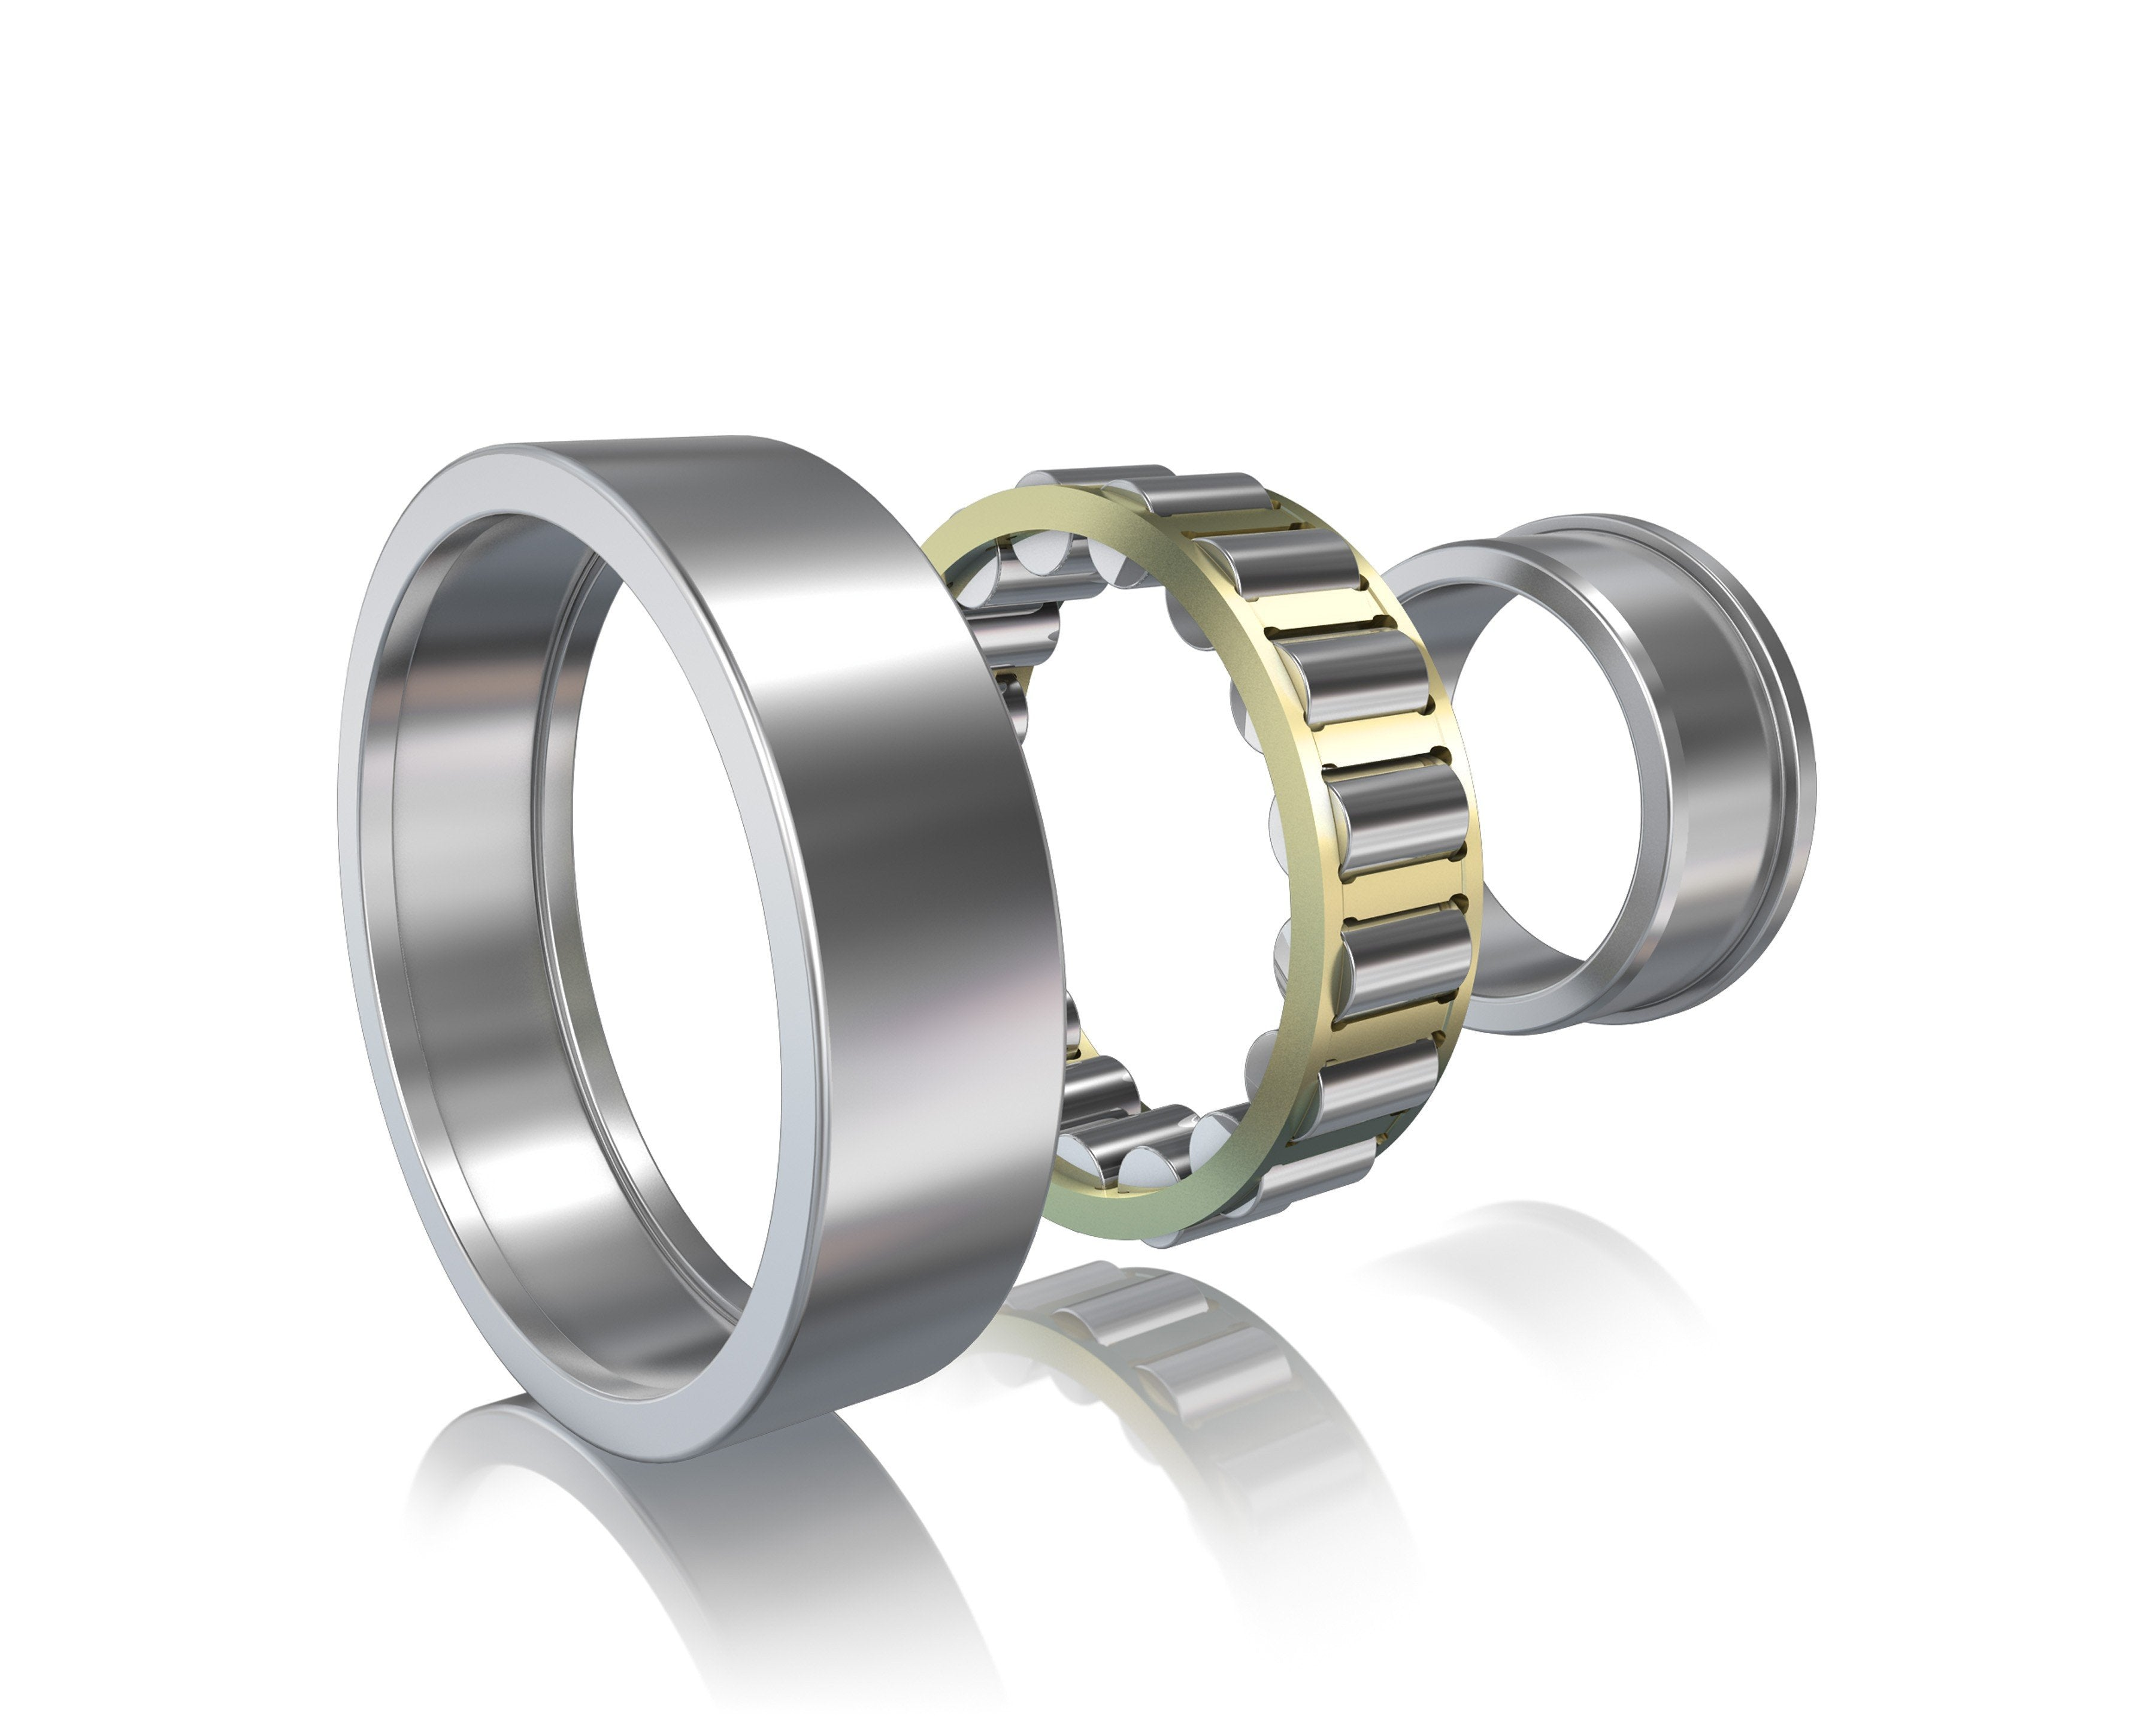 NU234-ECM-C3-SKF, Bearings, Cylindrical roller bearings